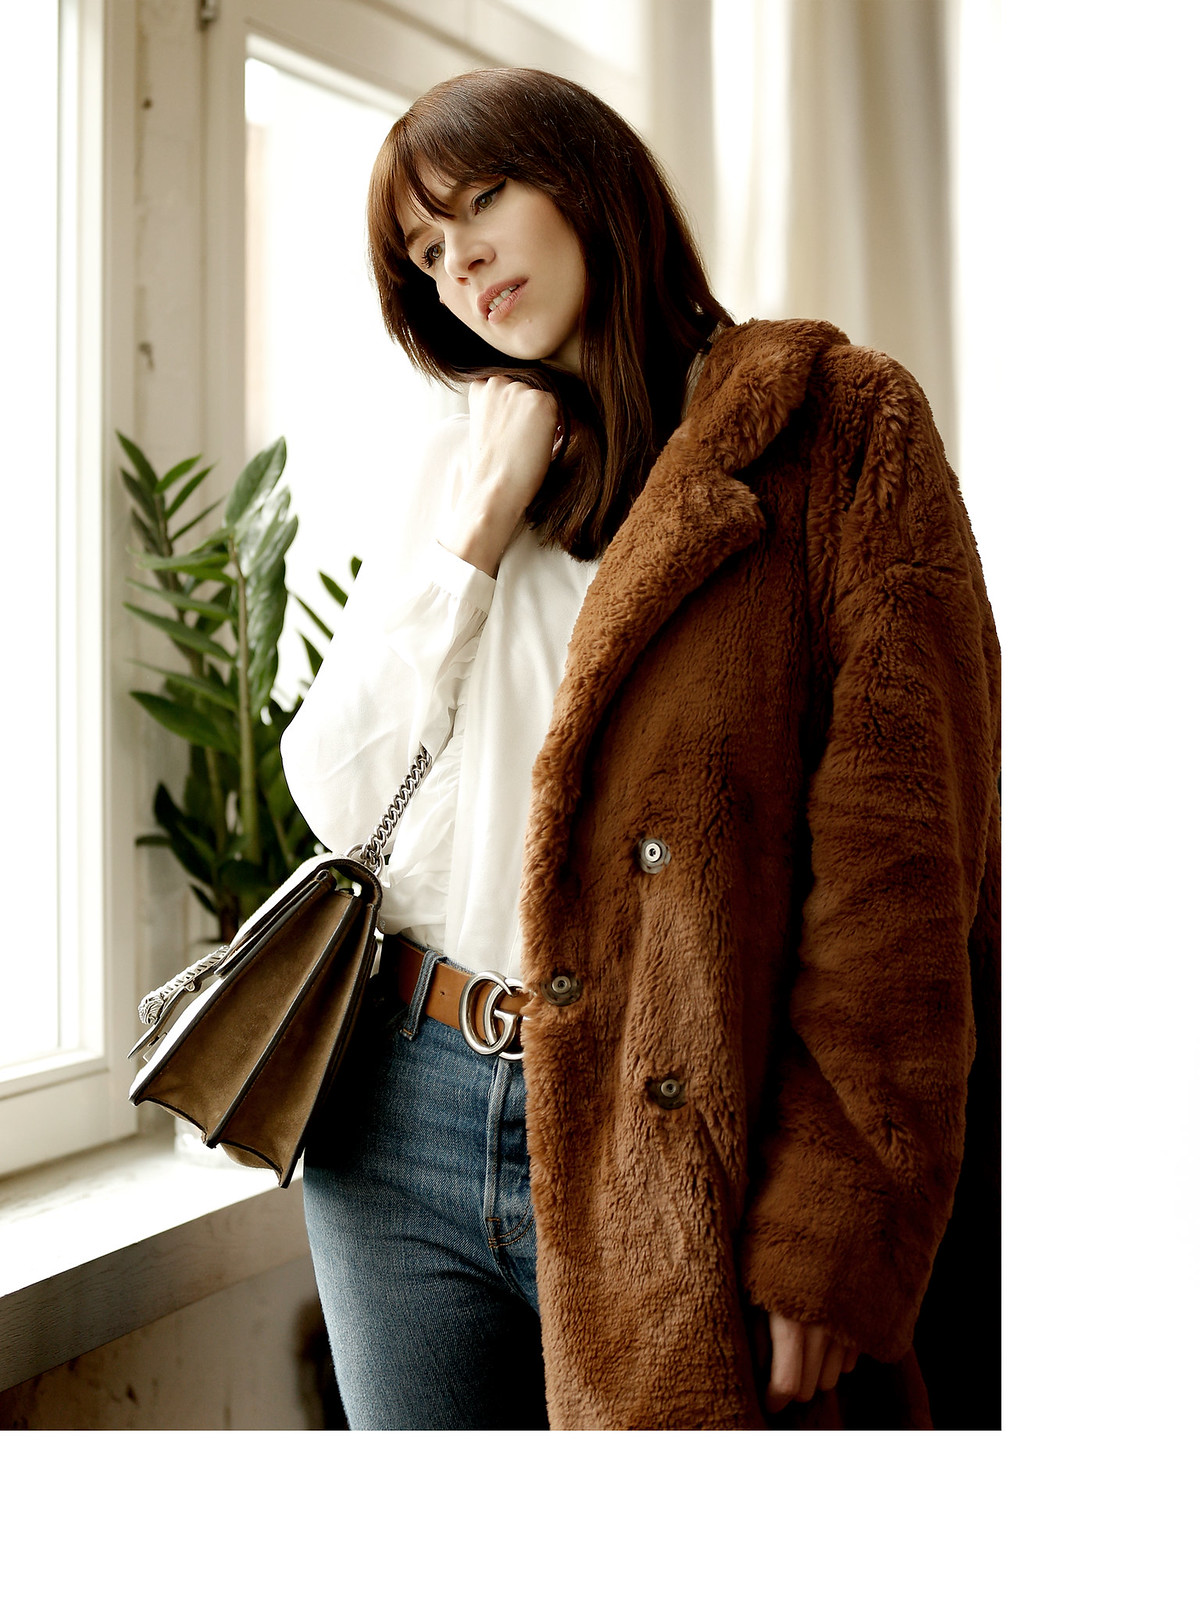 riani rianista editorial soho house loft 4 vintage 70s fashion brown leather fur teddy coat photoshoot photo session model brunette bangs parisienne cats & dogs fashion style blog berlin düsseldorf germany modeblogger fashionblog ricarda schernus 4